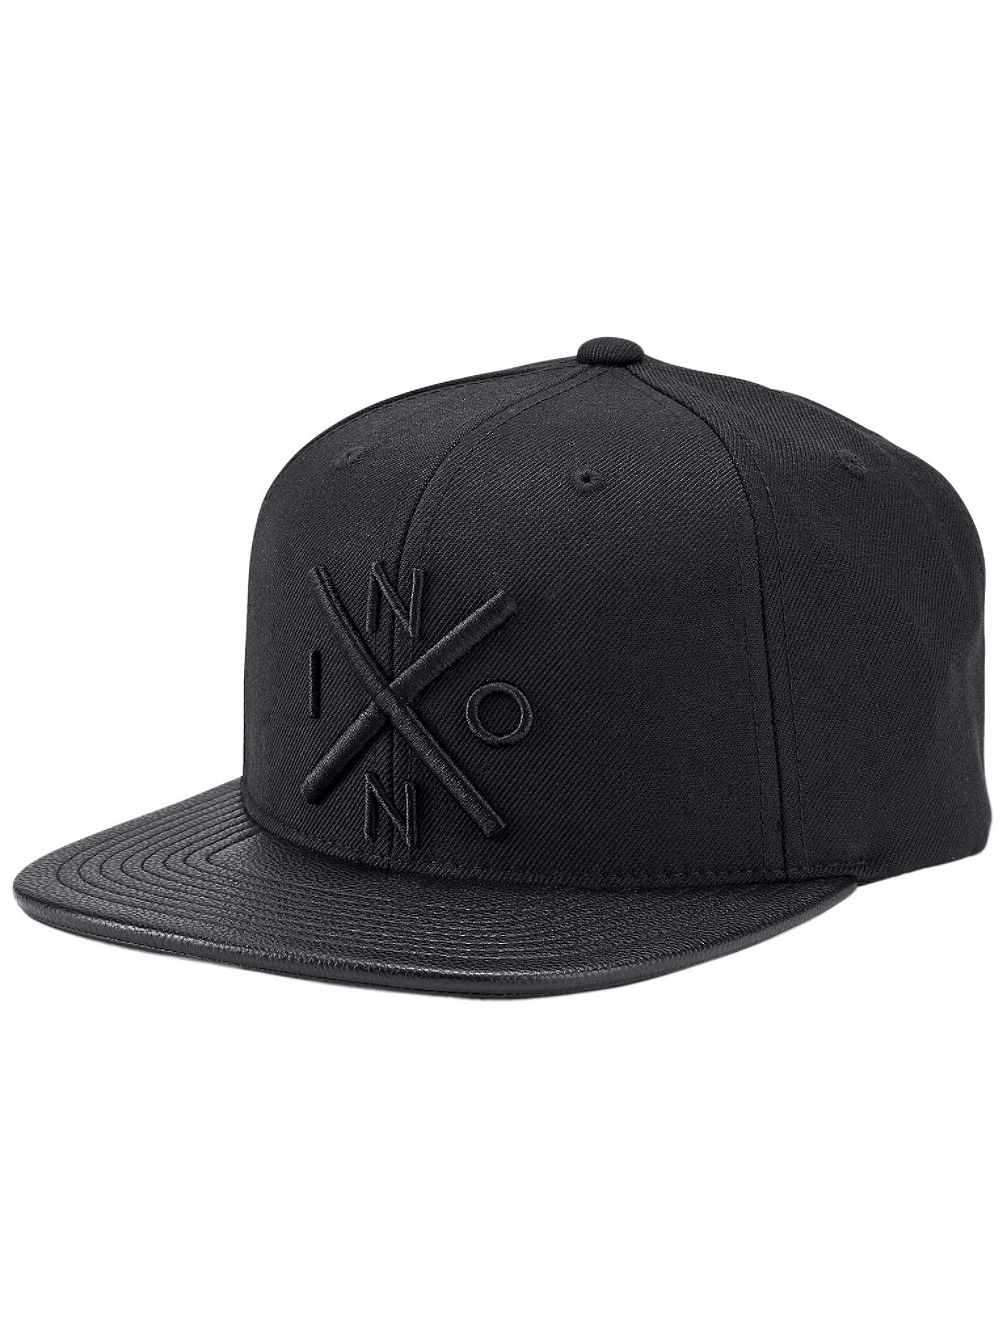 nixon-exchange-snapback-cap